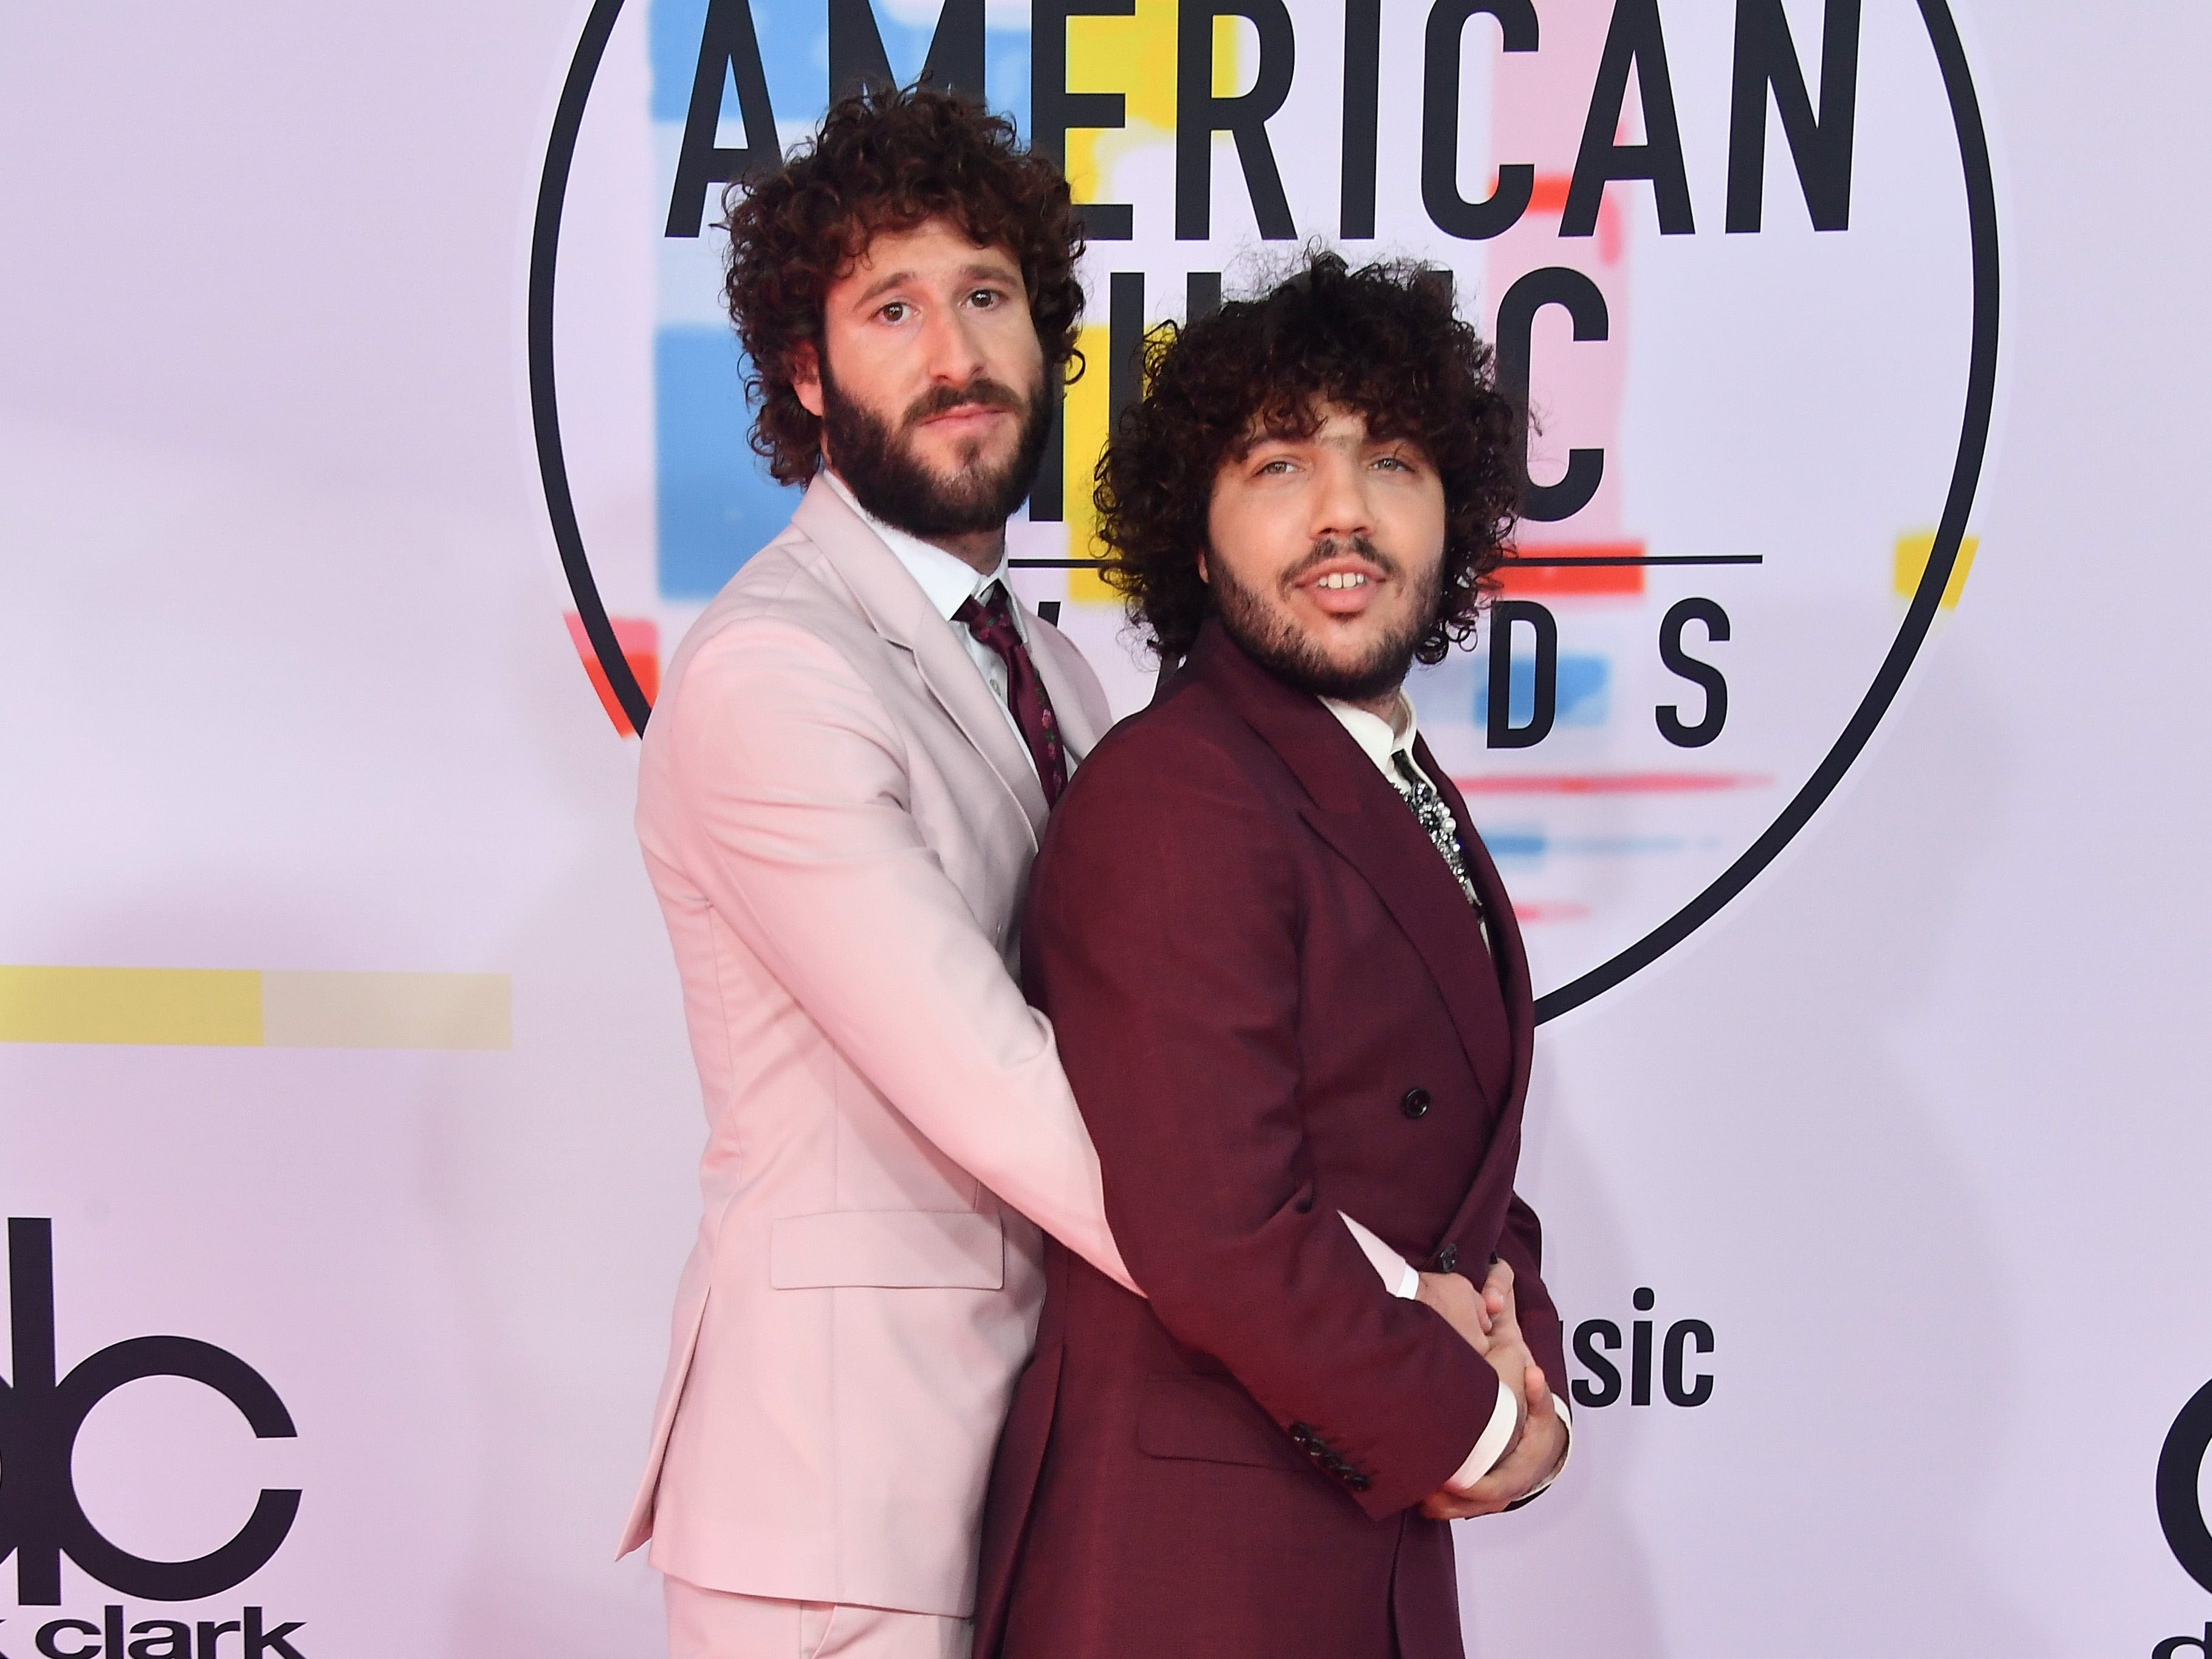 Lil Dicky, left, and Benny Blanco